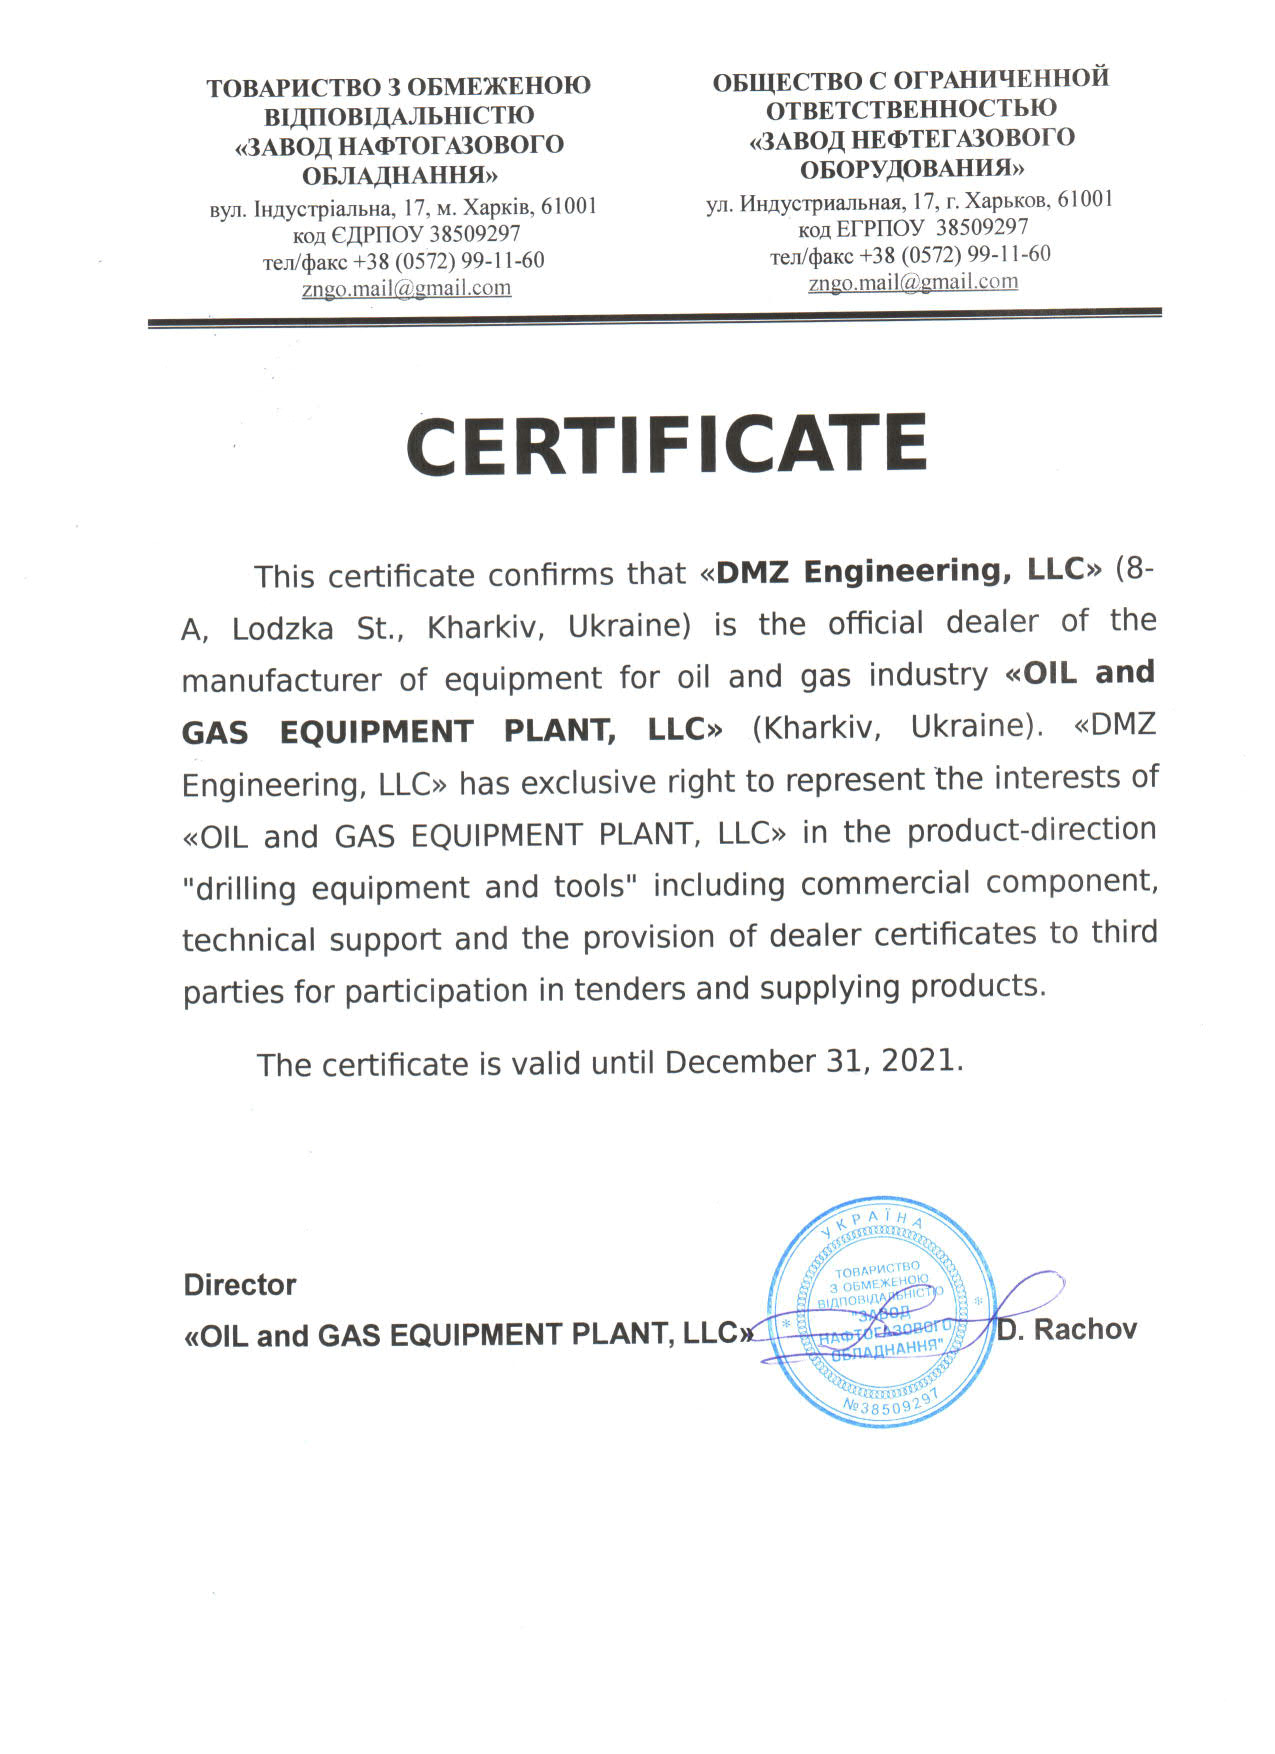 Contact us dmz engineering certificate issued by ogep ooo ukraine xflitez Gallery